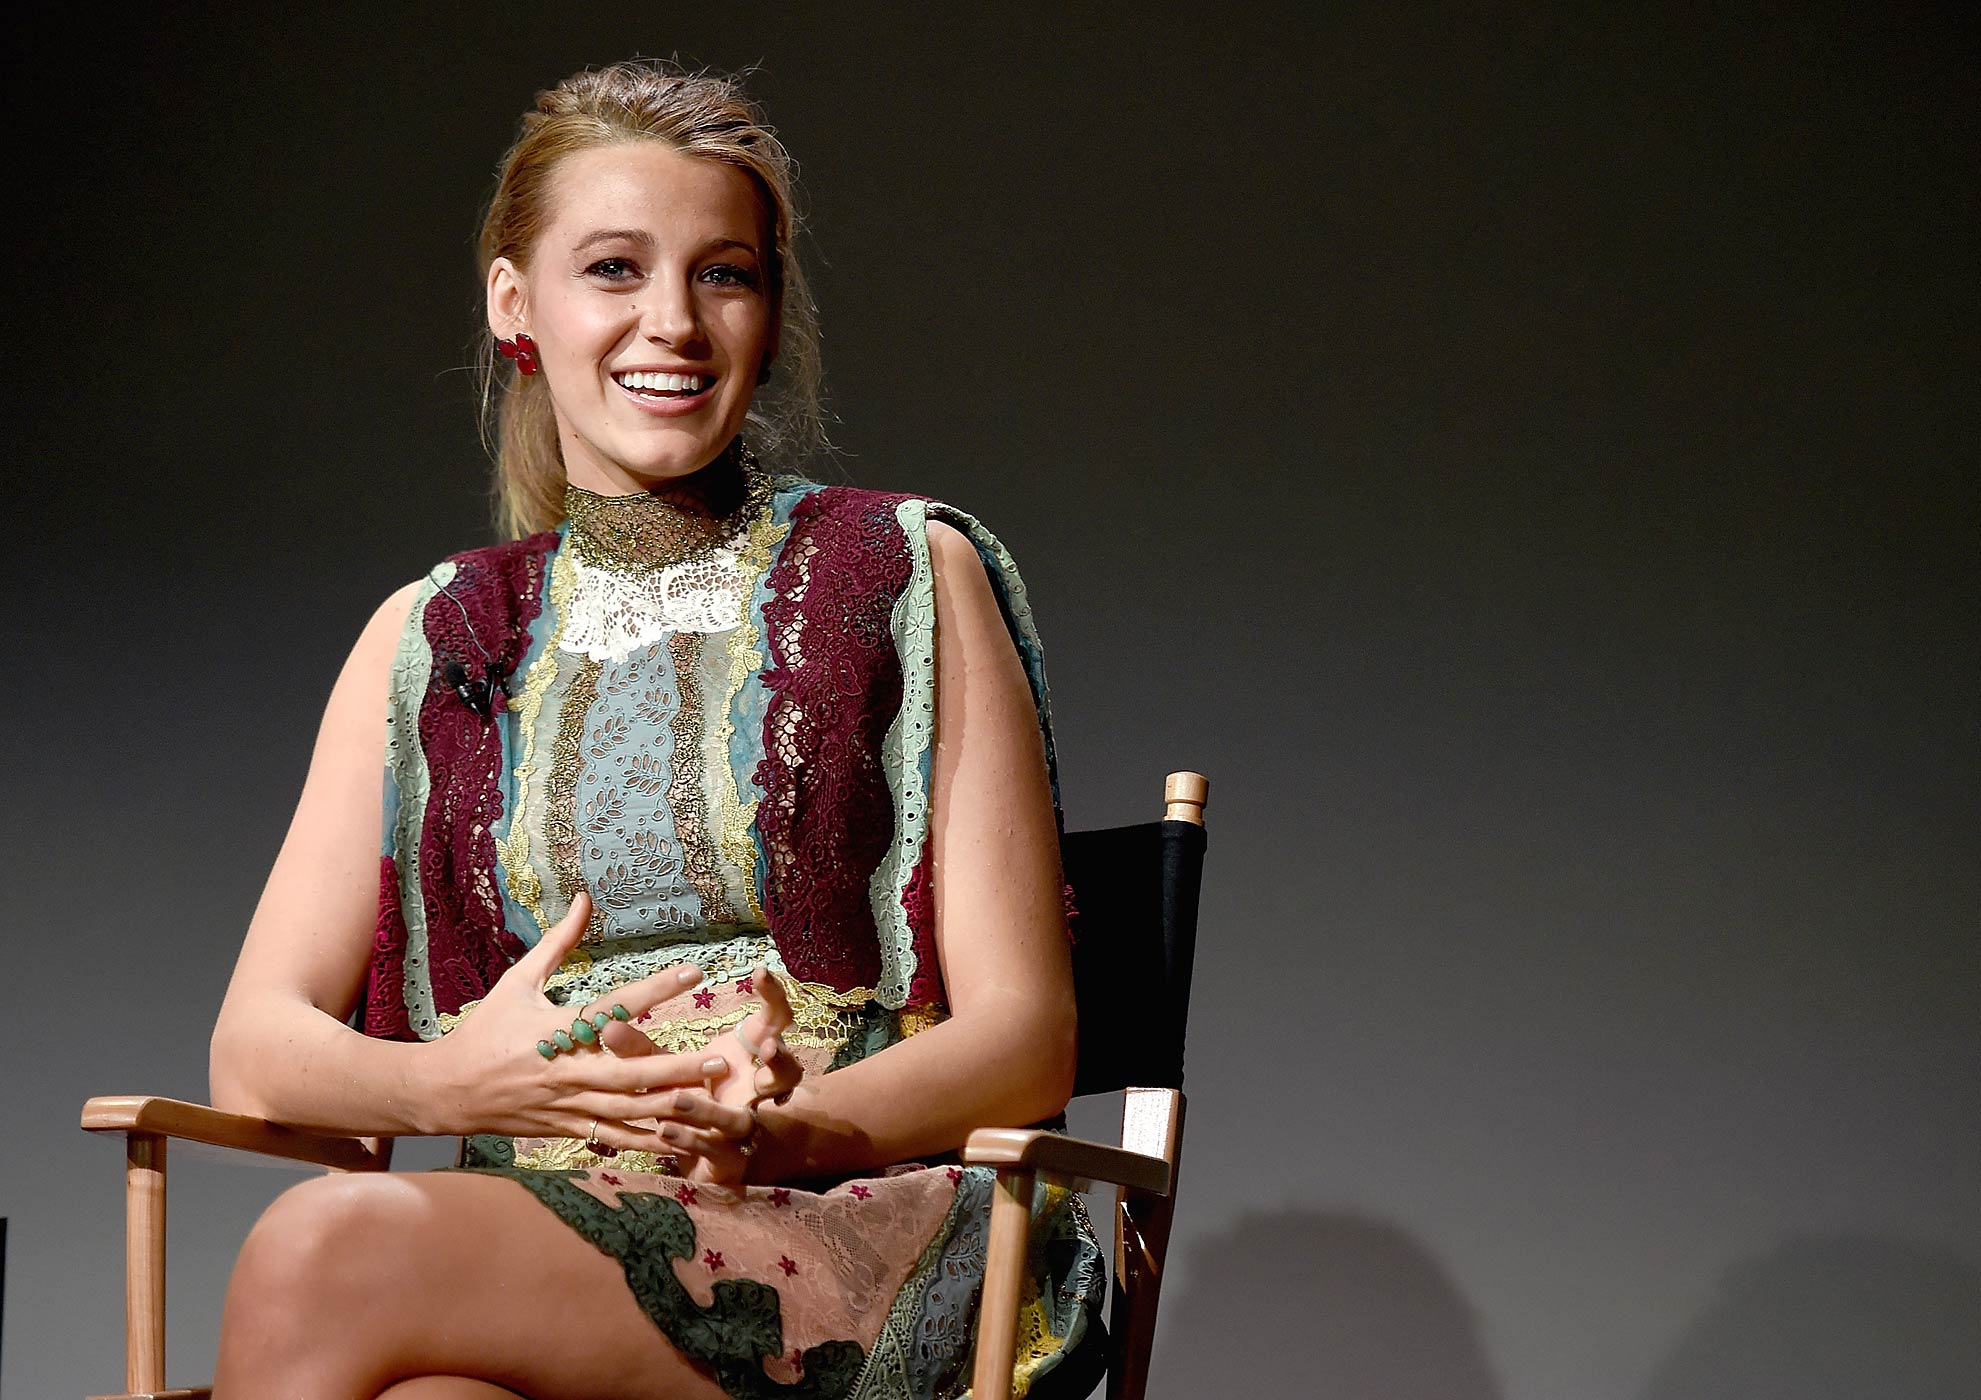 Blake Lively attends the Apple Store Soho Presents Meet The Filmmaker: Blake Lively, Age of Adaline on April 22, 2015 in New York City.